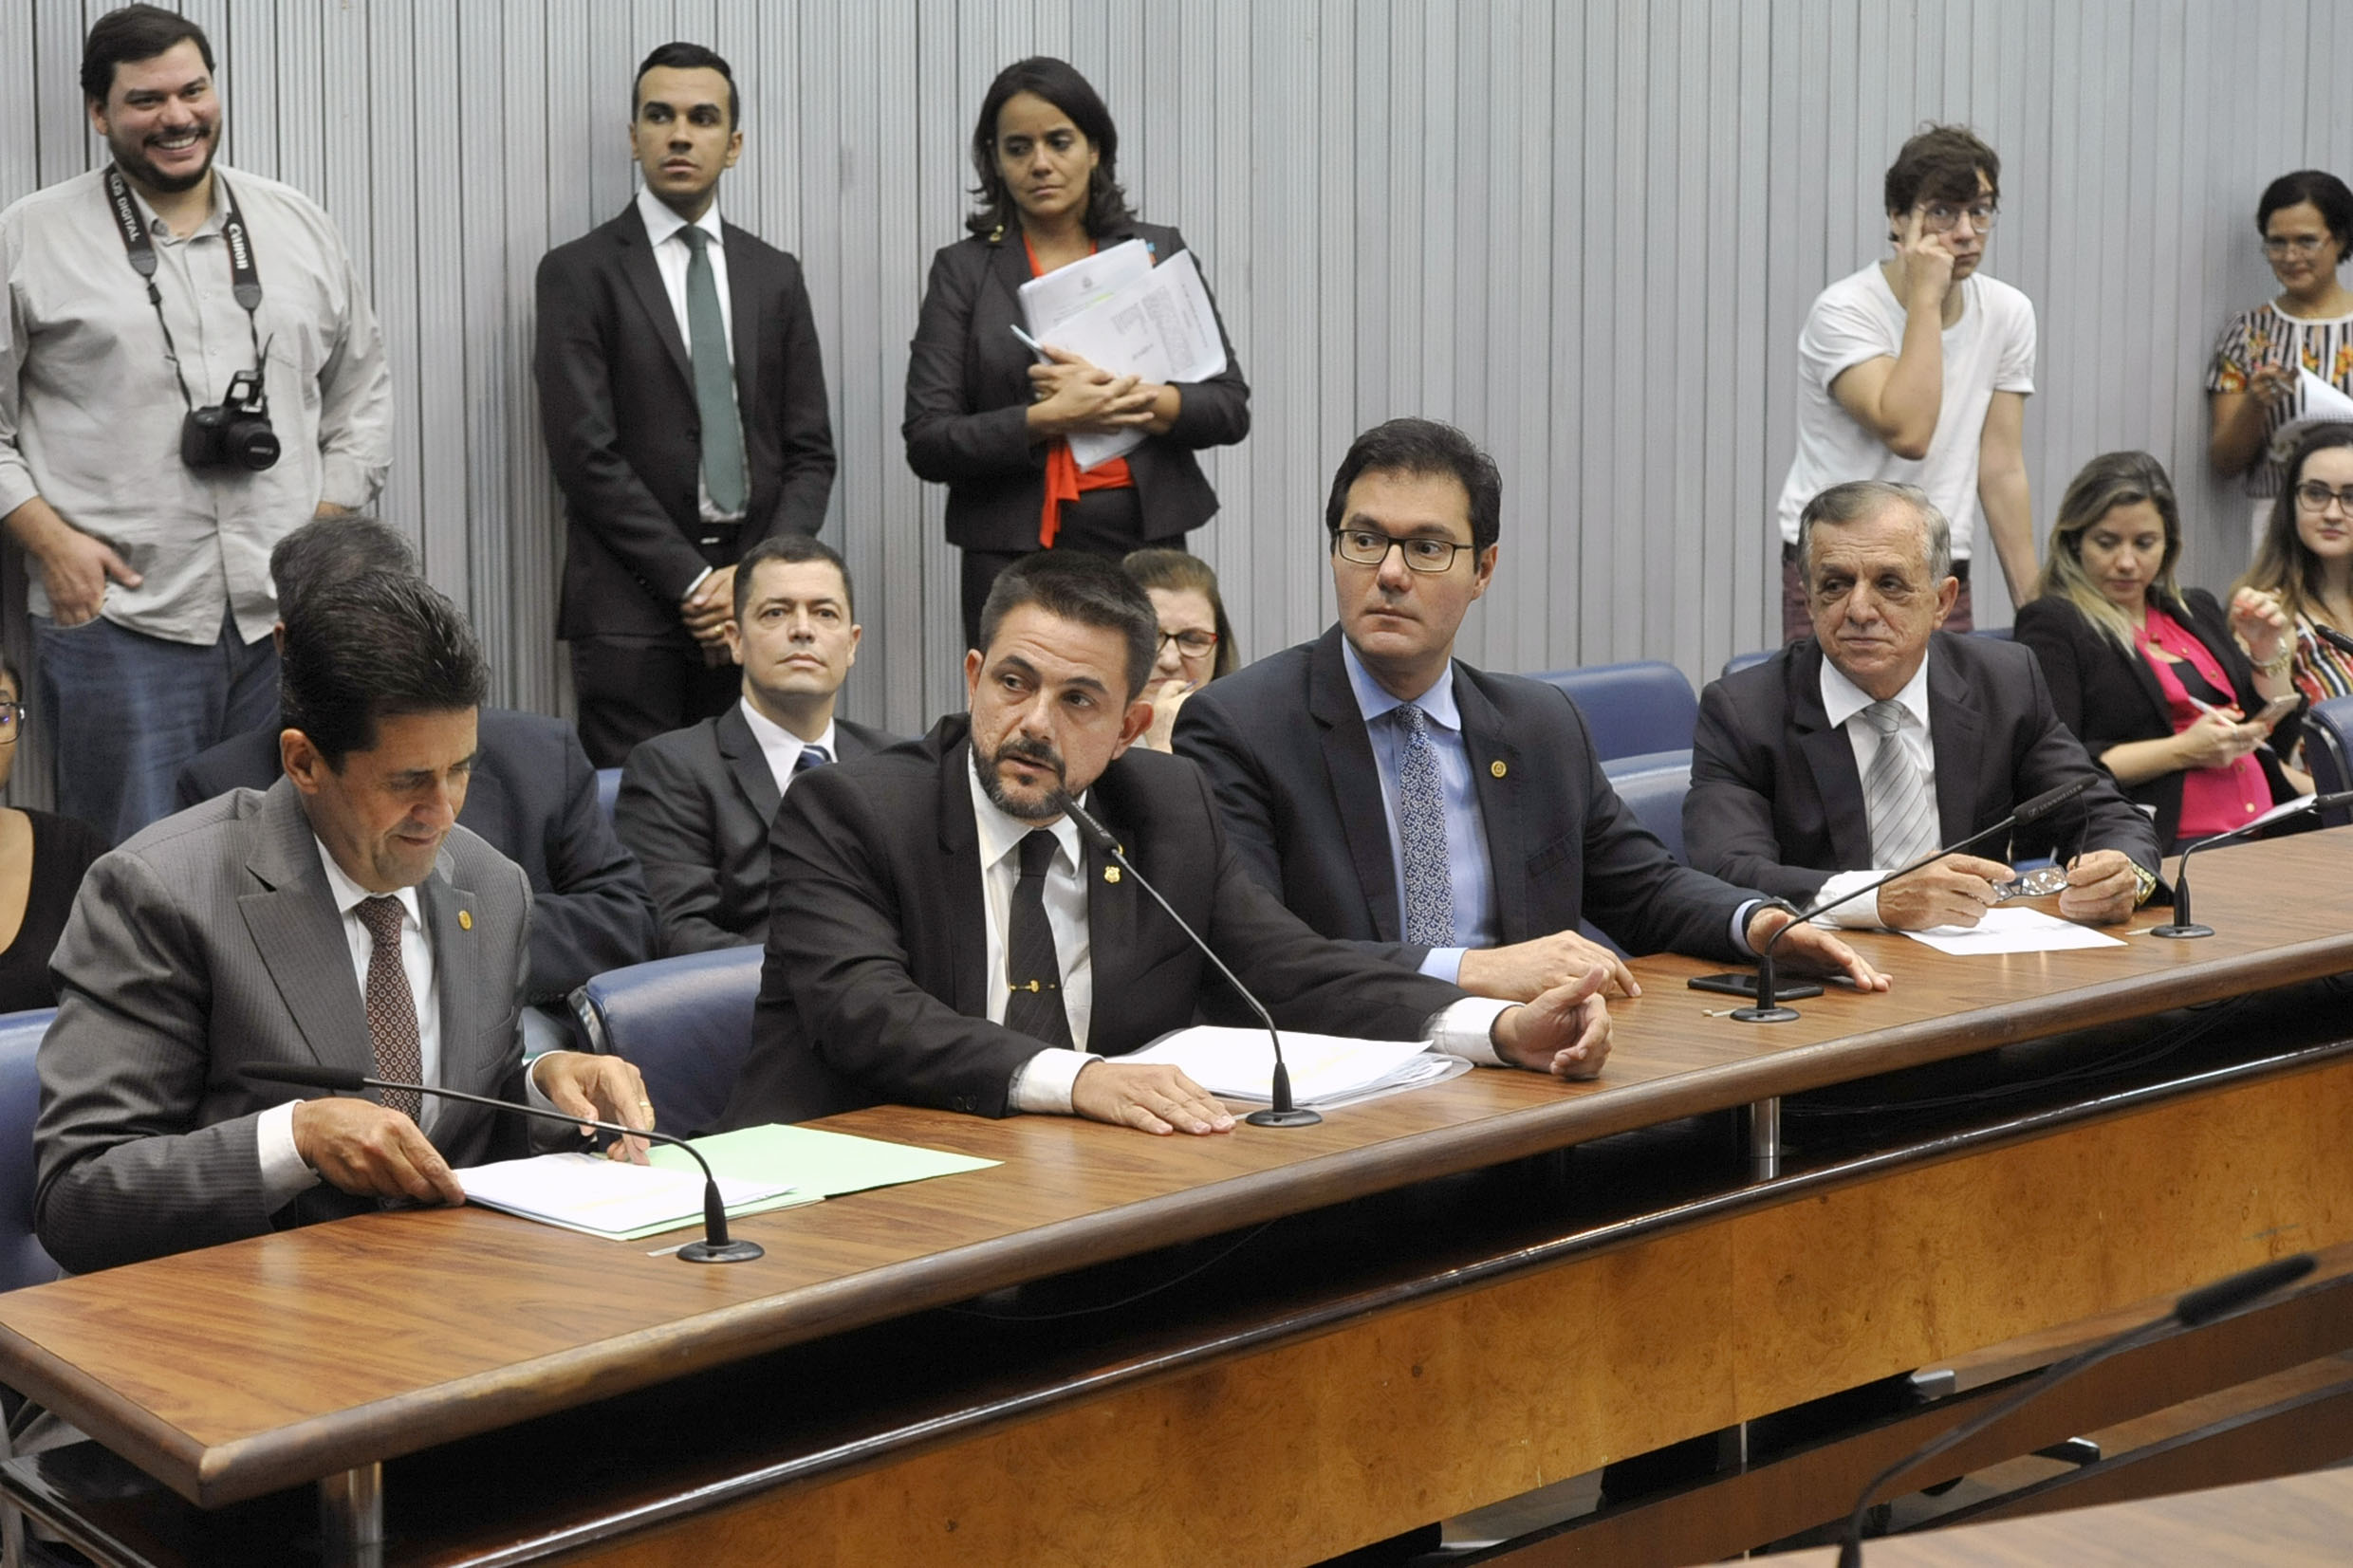 Parlamentares na CPI<a style='float:right' href='https://www3.al.sp.gov.br/repositorio/noticia/N-04-2019/fg233040.jpg' target=_blank><img src='/_img/material-file-download-white.png' width='14px' alt='Clique para baixar a imagem'></a>